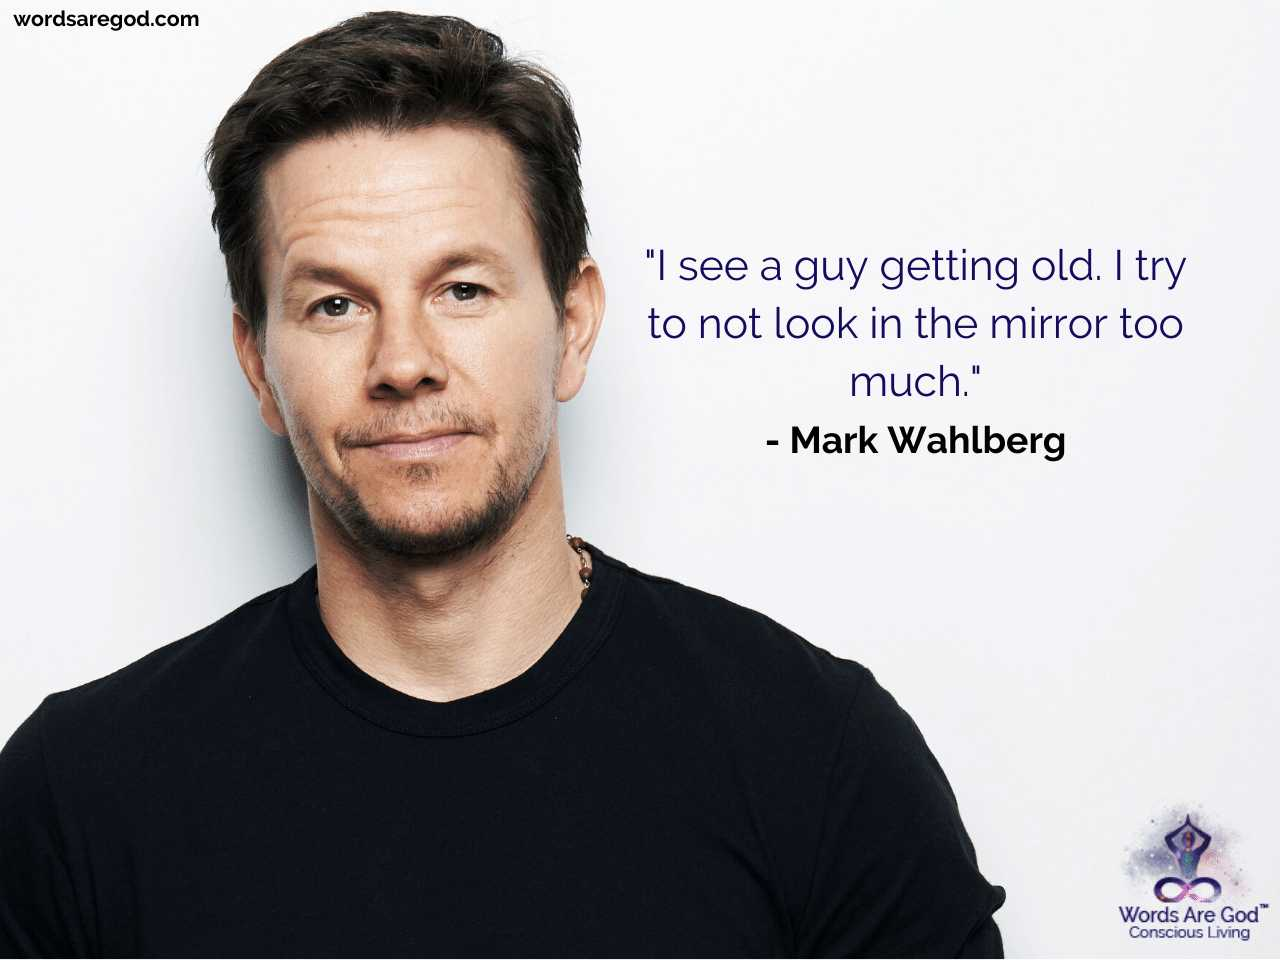 Mark Wahlberg Inspirational Quotes